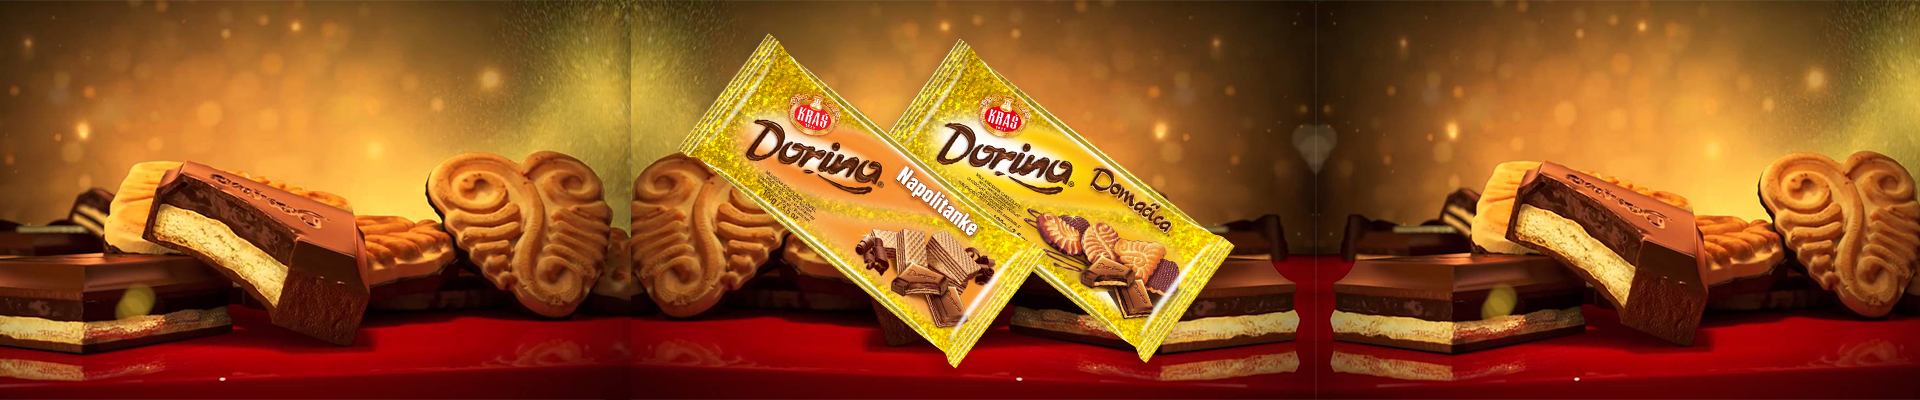 New Dorina with Domacica and Wafer!